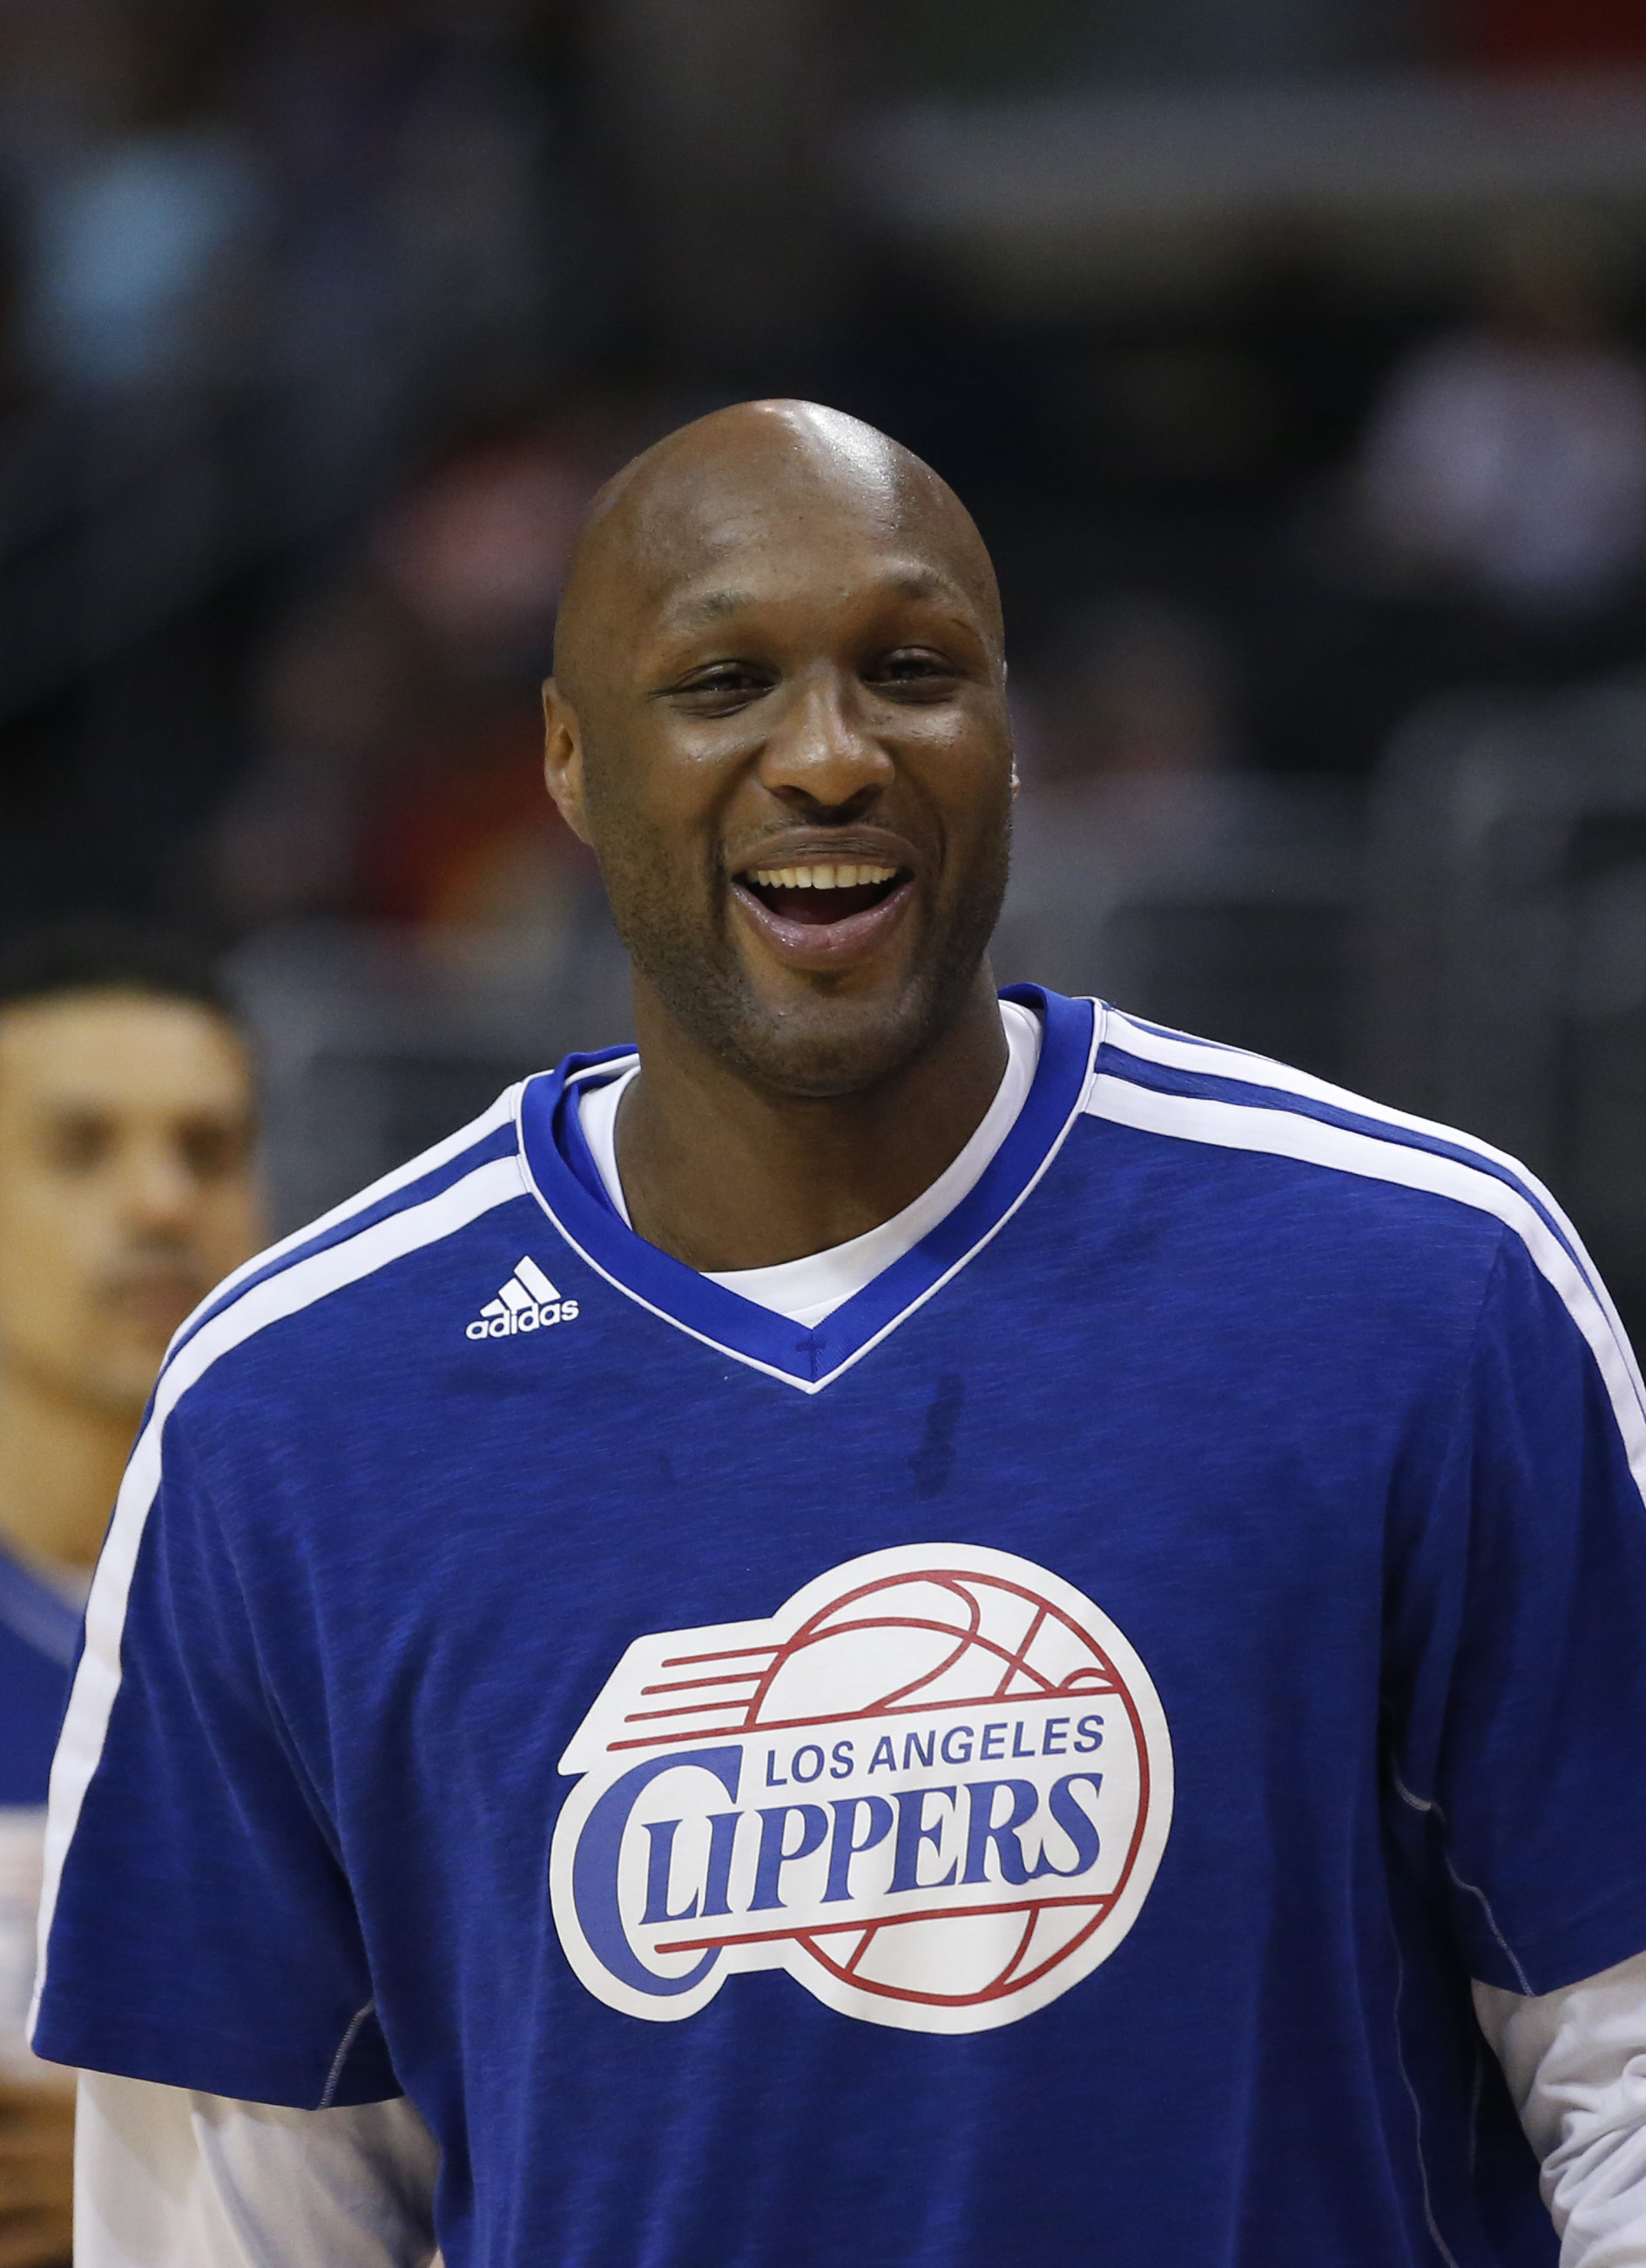 Los Angeles Clippers' Lamar Odom smiles during practice for an NBA basketball game against the Memphis Grizzlies in Los Angeles, Wednesday, March 13, 2013. (AP Photo/Jae C. Hong)